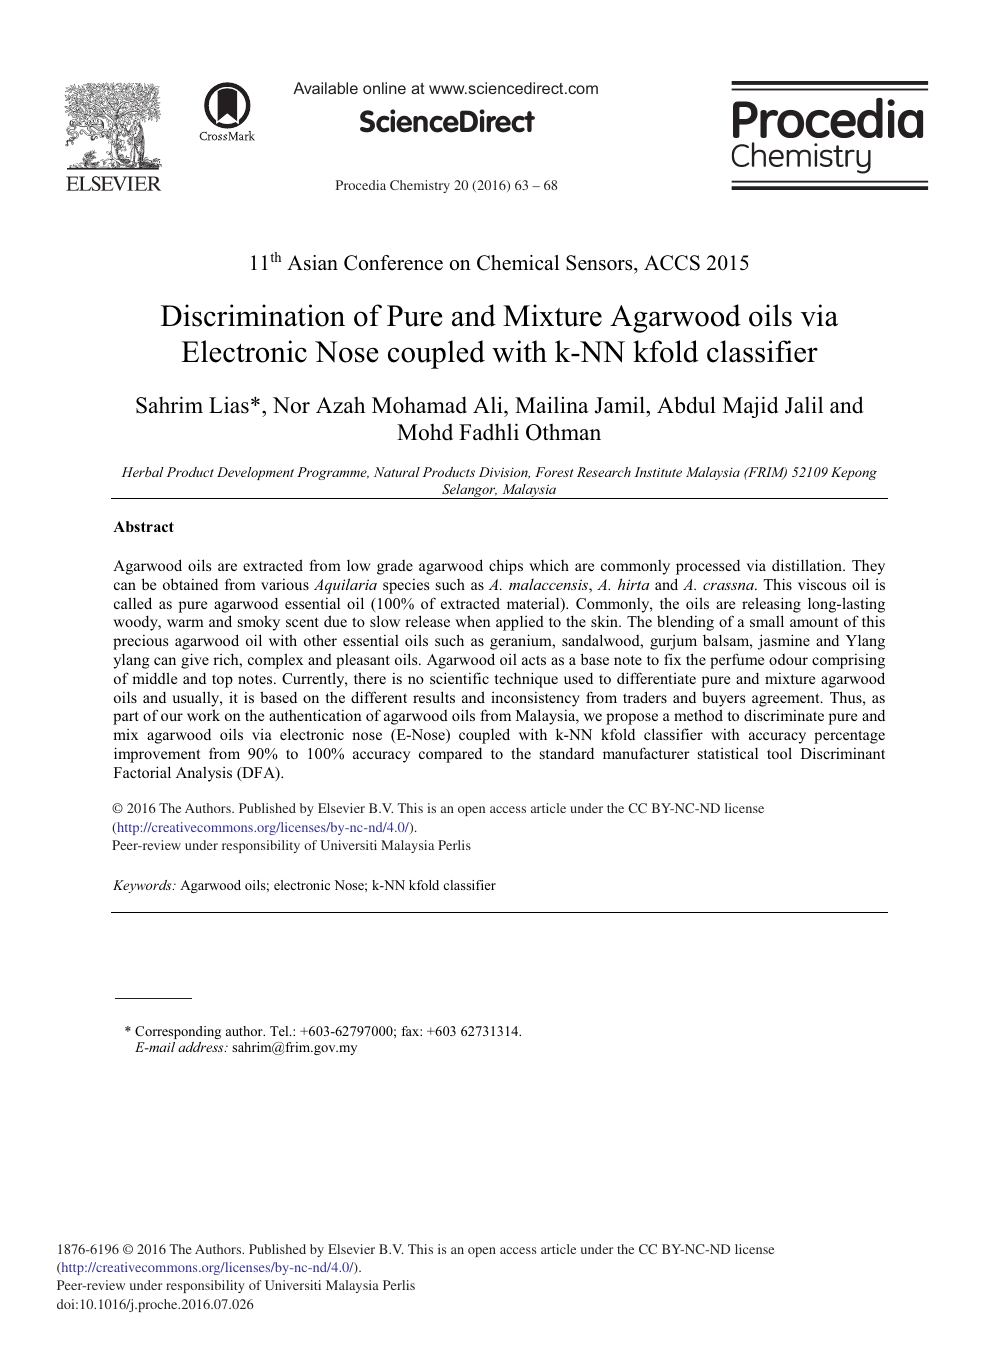 Discrimination of Pure and Mixture Agarwood Oils via Electronic Nose